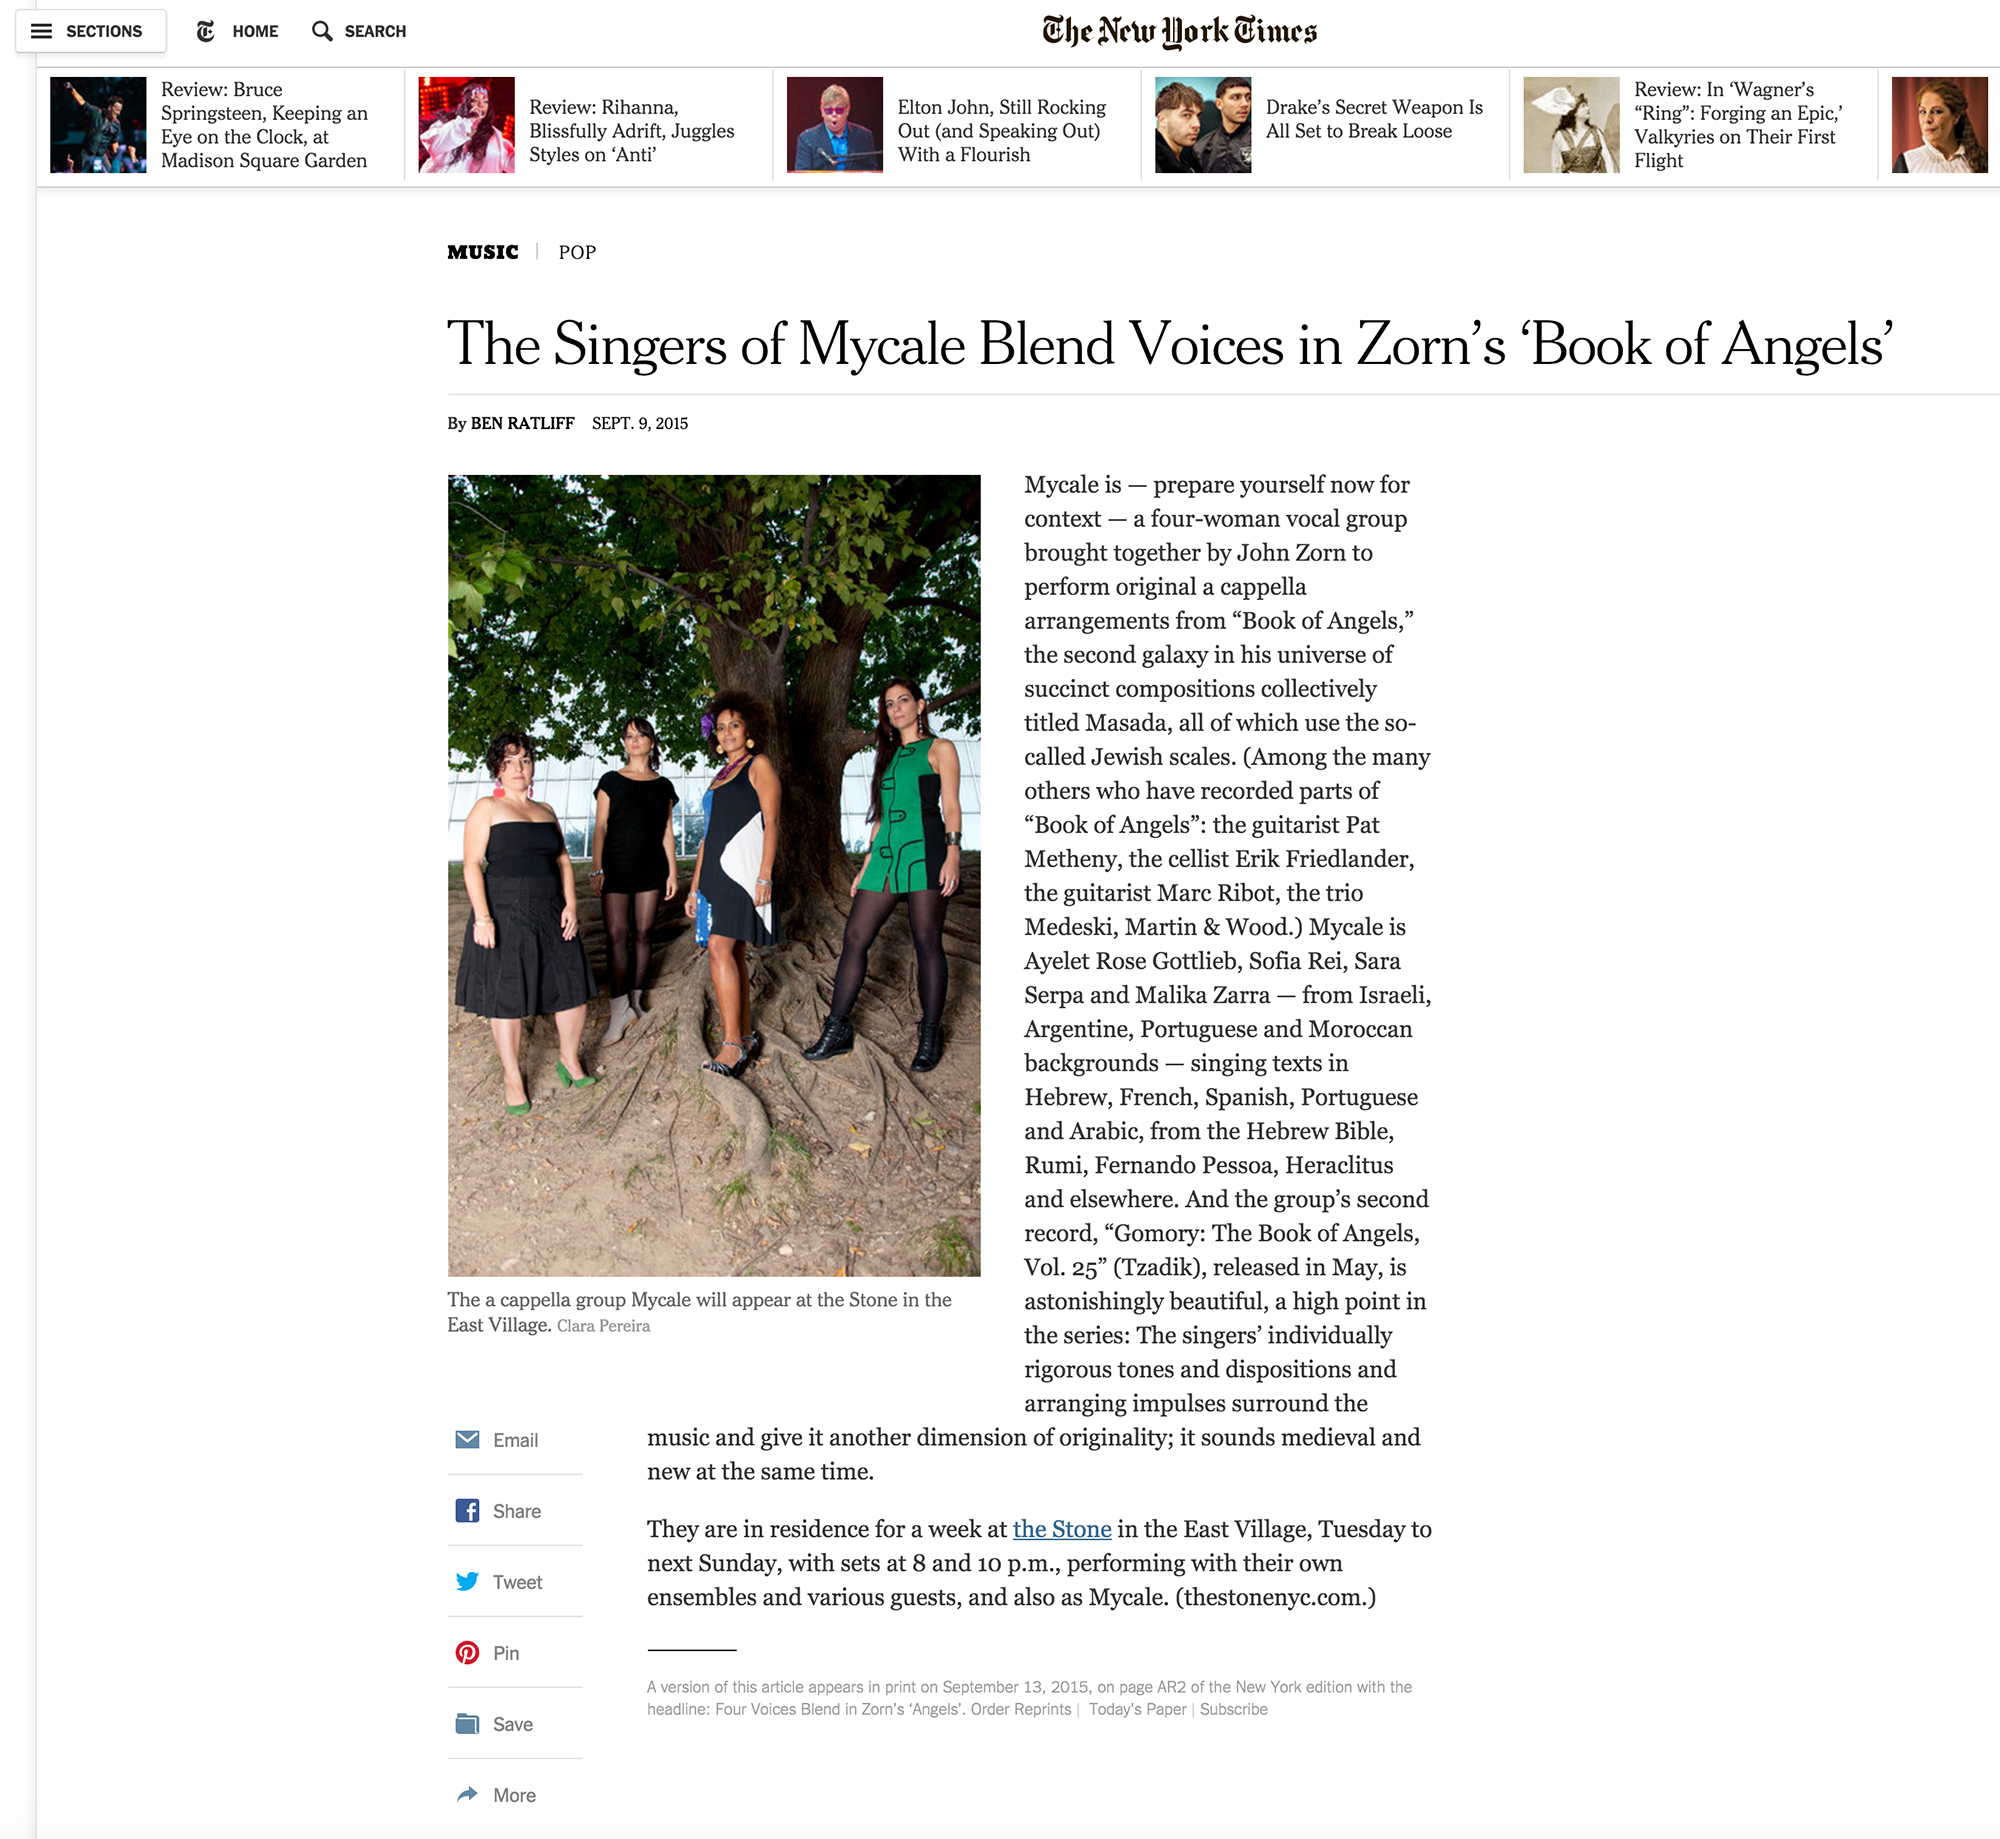 NYTimes_Sept2015_Mycale.jpg